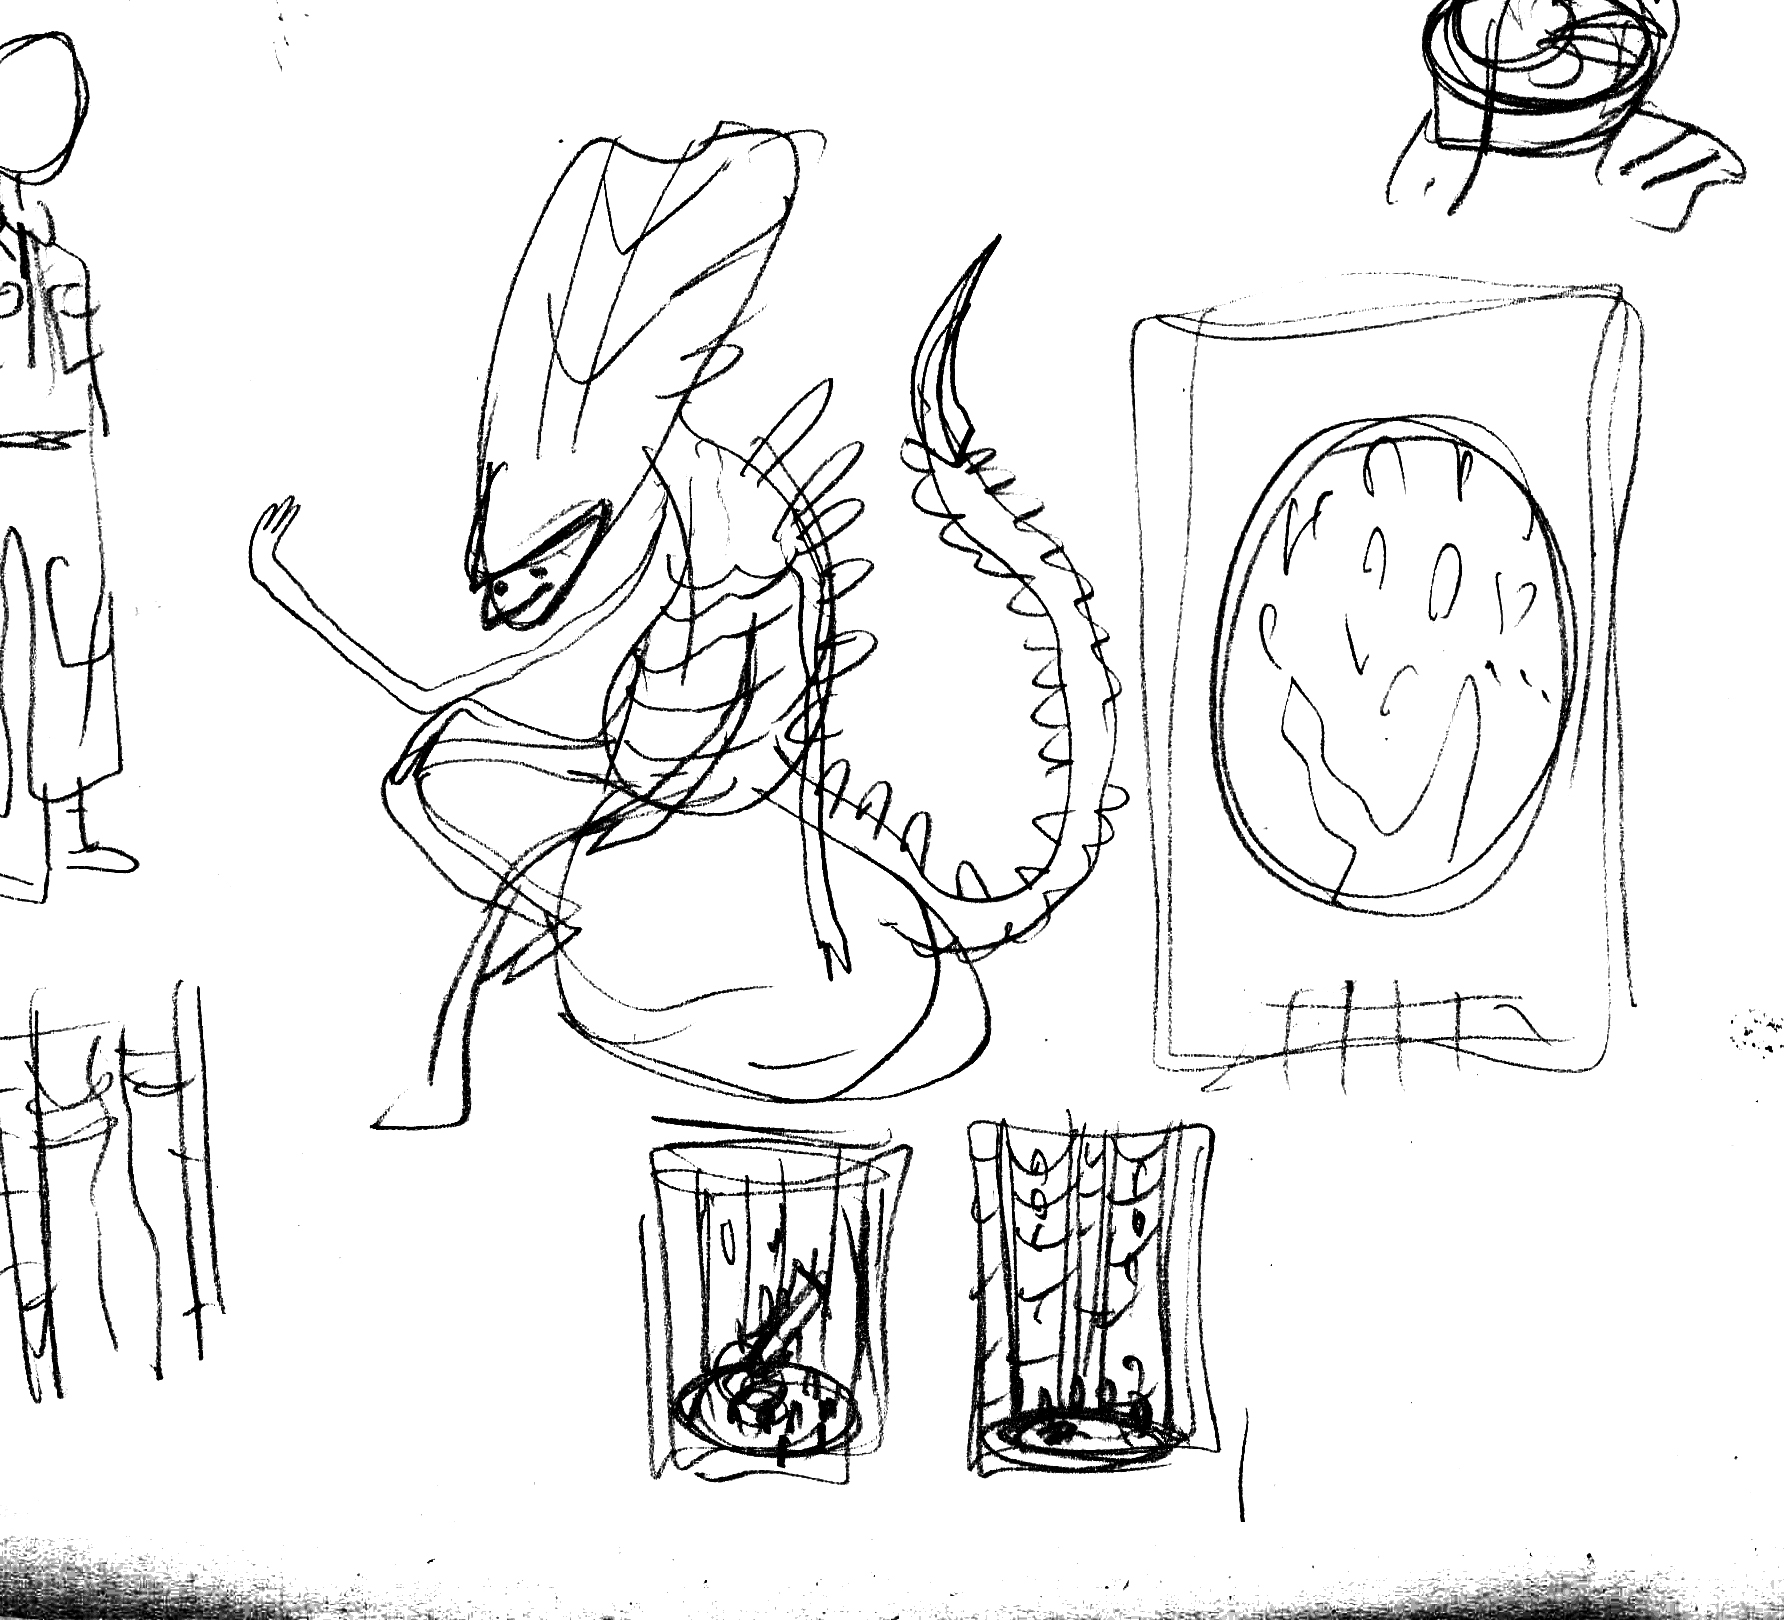 Here you can see the various thumbnails for the entire piece. I knew i wanted to have a lot of aliens hanging about together. I toyed with having them all in that big gun room and all over the egg in the movie poster. The egg won the idea battle.